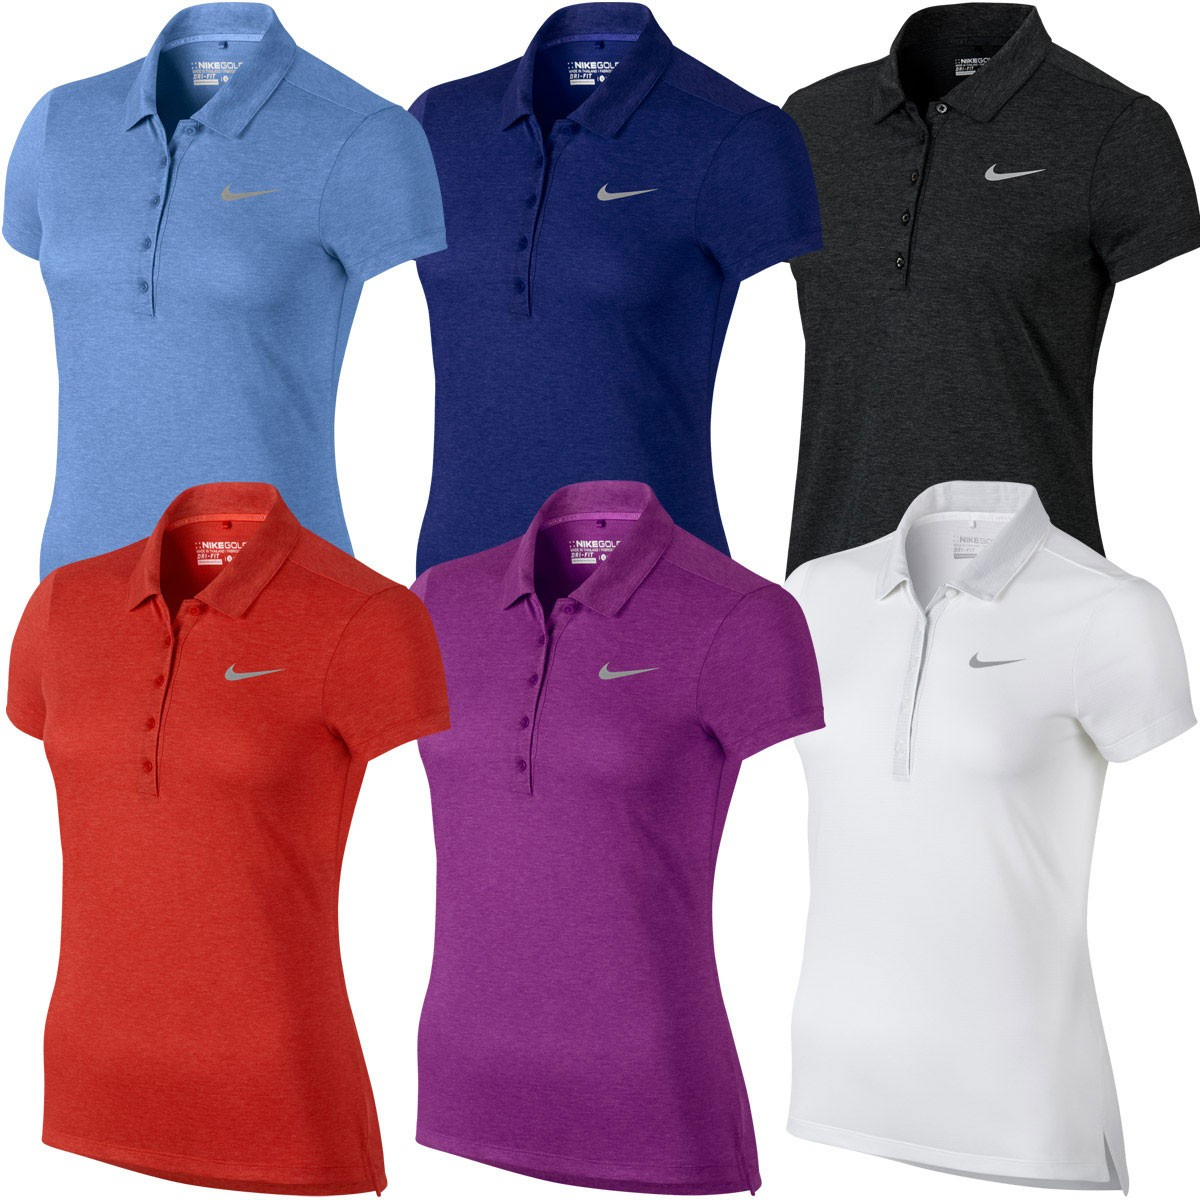 Nike golf 2016 womens precision heather dri fit for Women s dri fit golf shirts